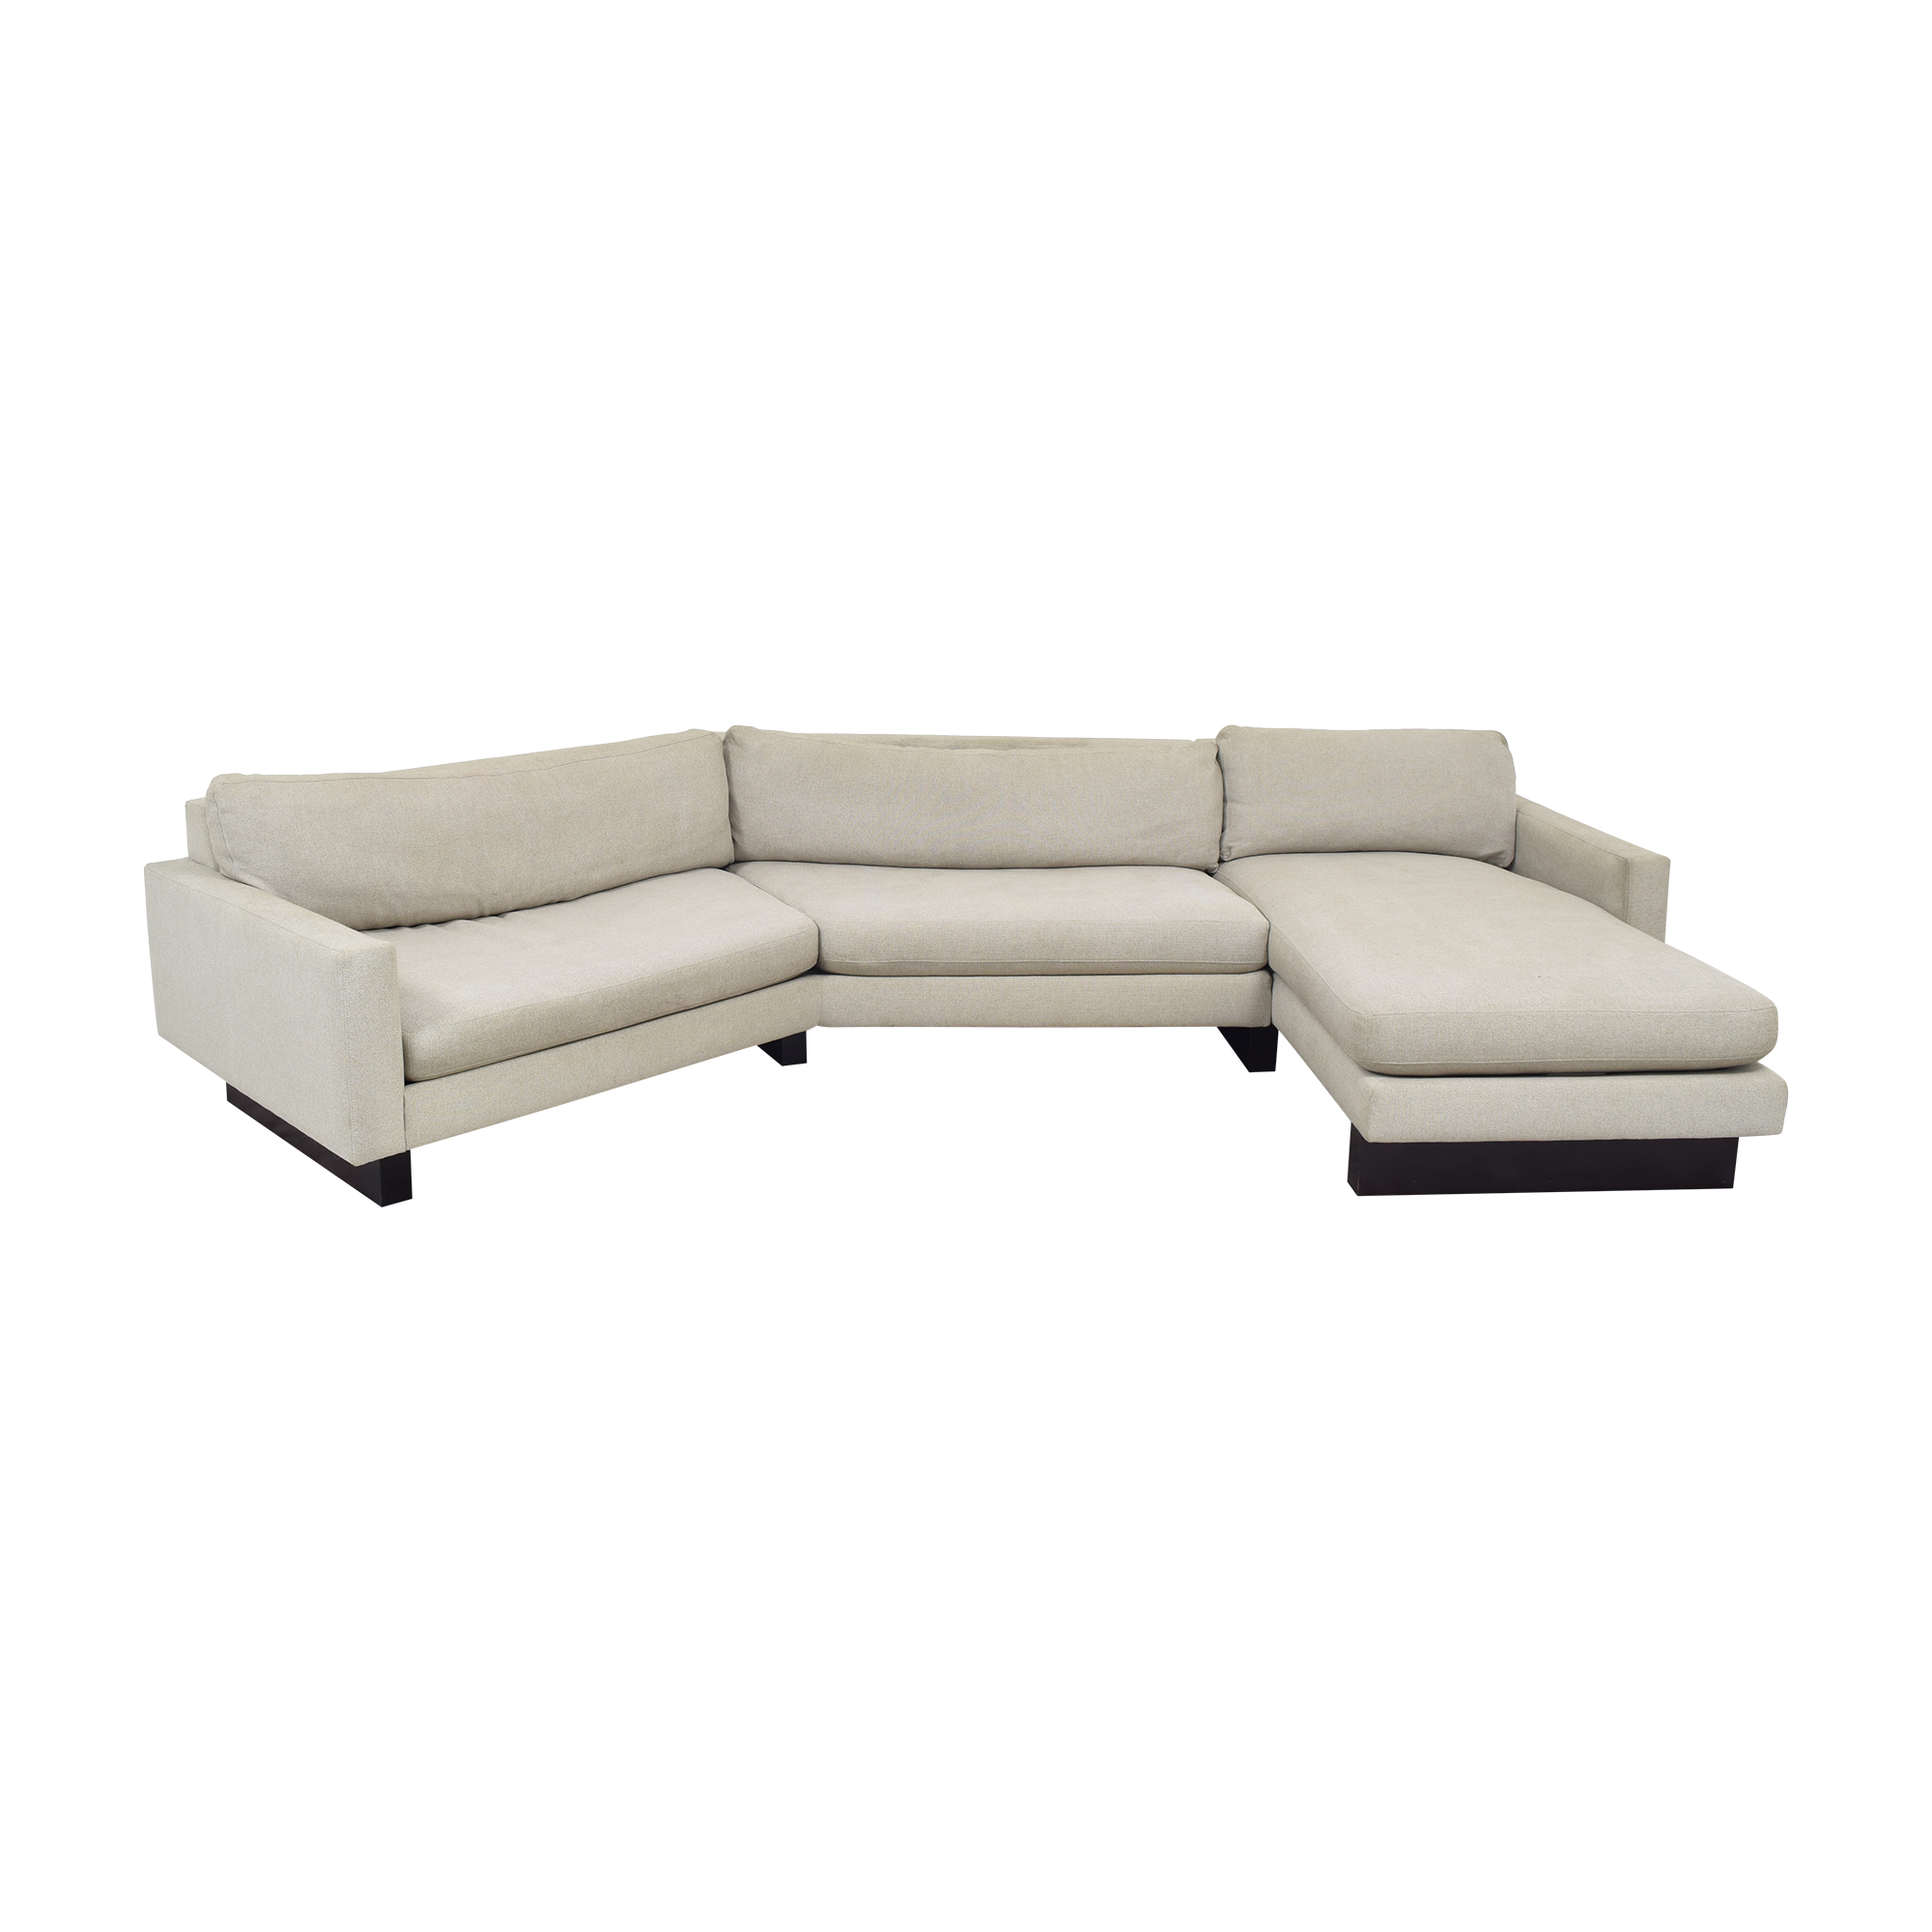 shop Room & Board Hess Angled Sectional with Chaise Room & Board